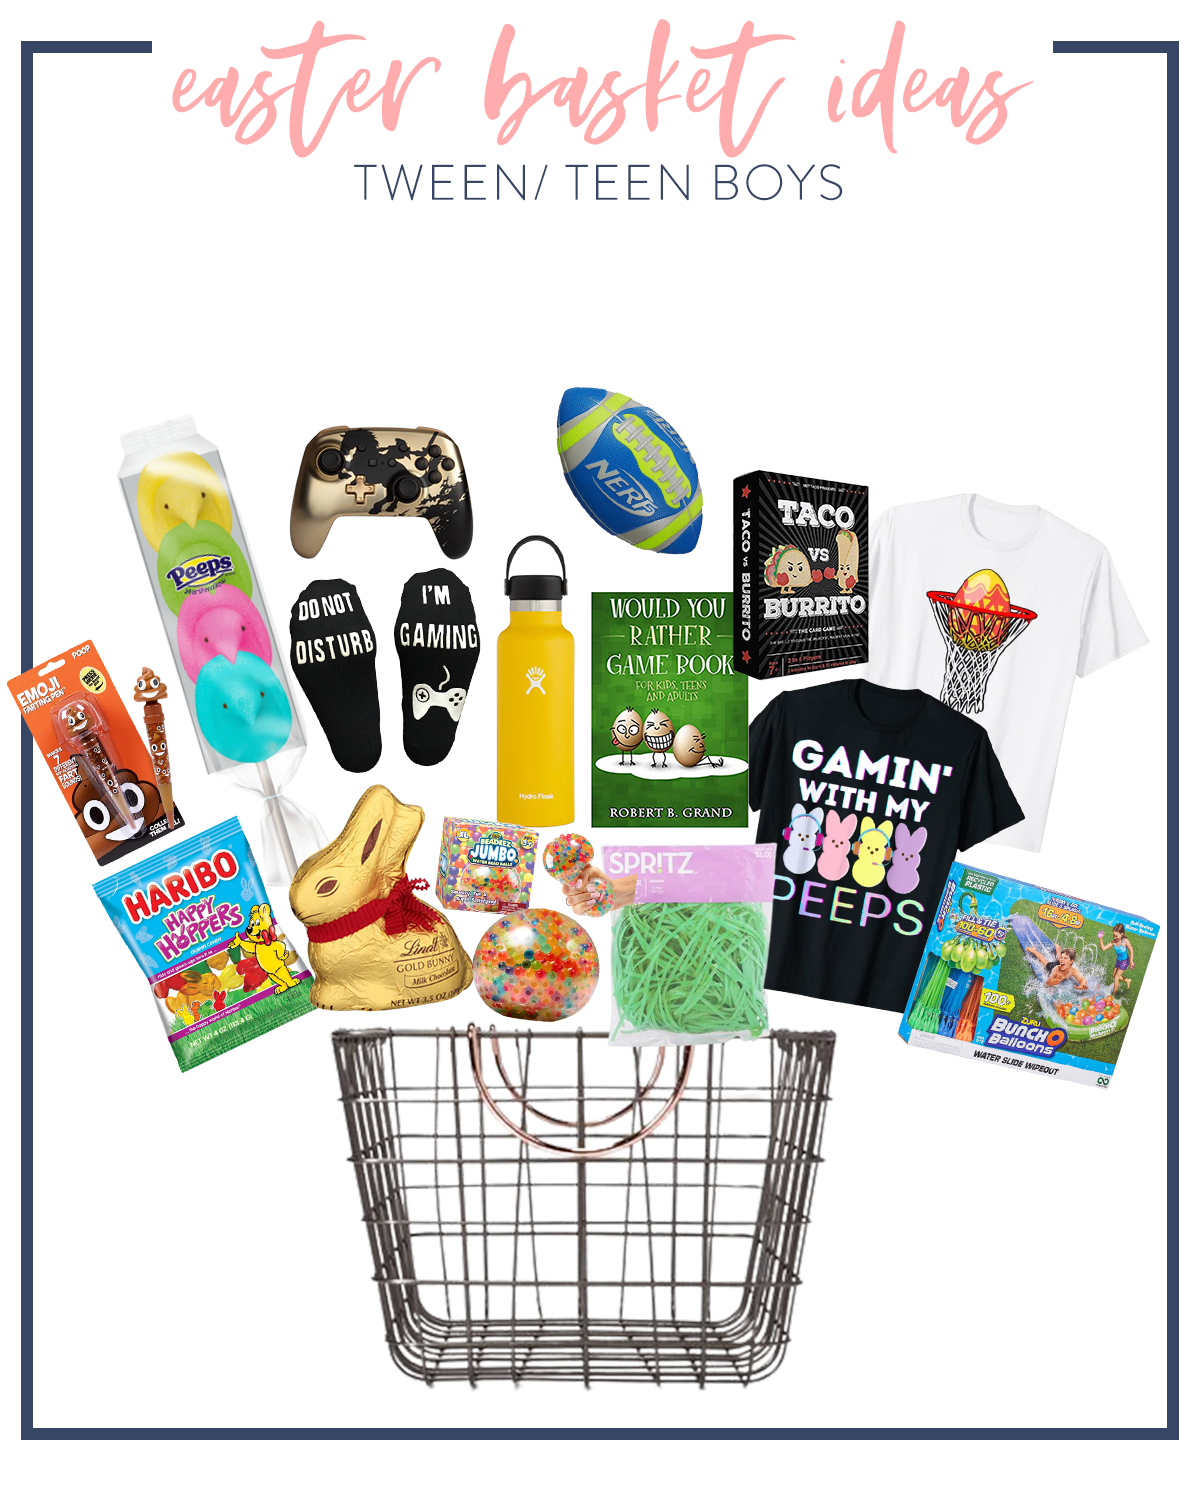 Kids Easter Basket Ideas by popular Houston lifestyle blog, Fancy Ashley: collage image of peeps, xbox game controller, nerf football, metal wire basket, chocolate bunny, green basket grass, peeps shirt, basketball egg shirt, haribo gummy bears, hydro flask water bottle, Would You Rather game Book, gaming socks, and poop emoji pen.